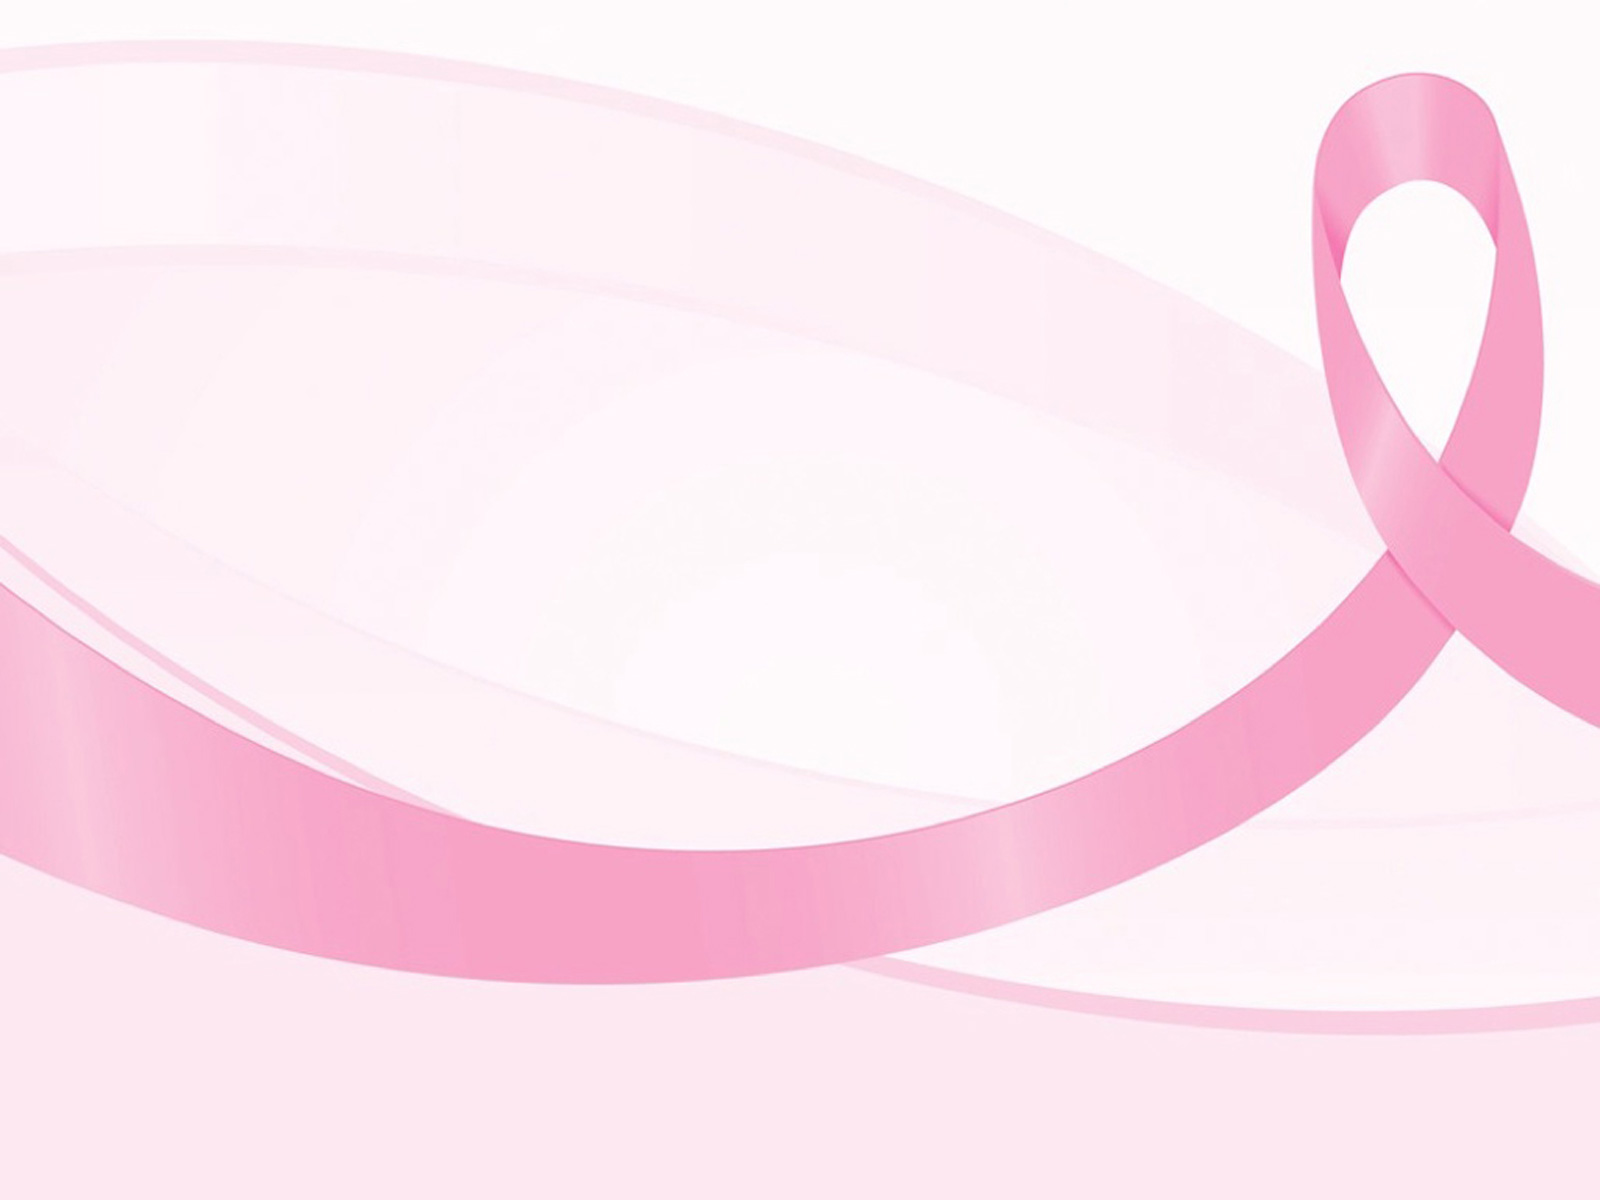 Free Download Breast Cancer Hd Wallpapers 1600x1200 For Your Desktop Mobile Tablet Explore 73 Breast Cancer Awareness Wallpaper Breast Cancer Wallpaper Background Cancer Ribbon Wallpaper Free Breast Cancer Wallpaper